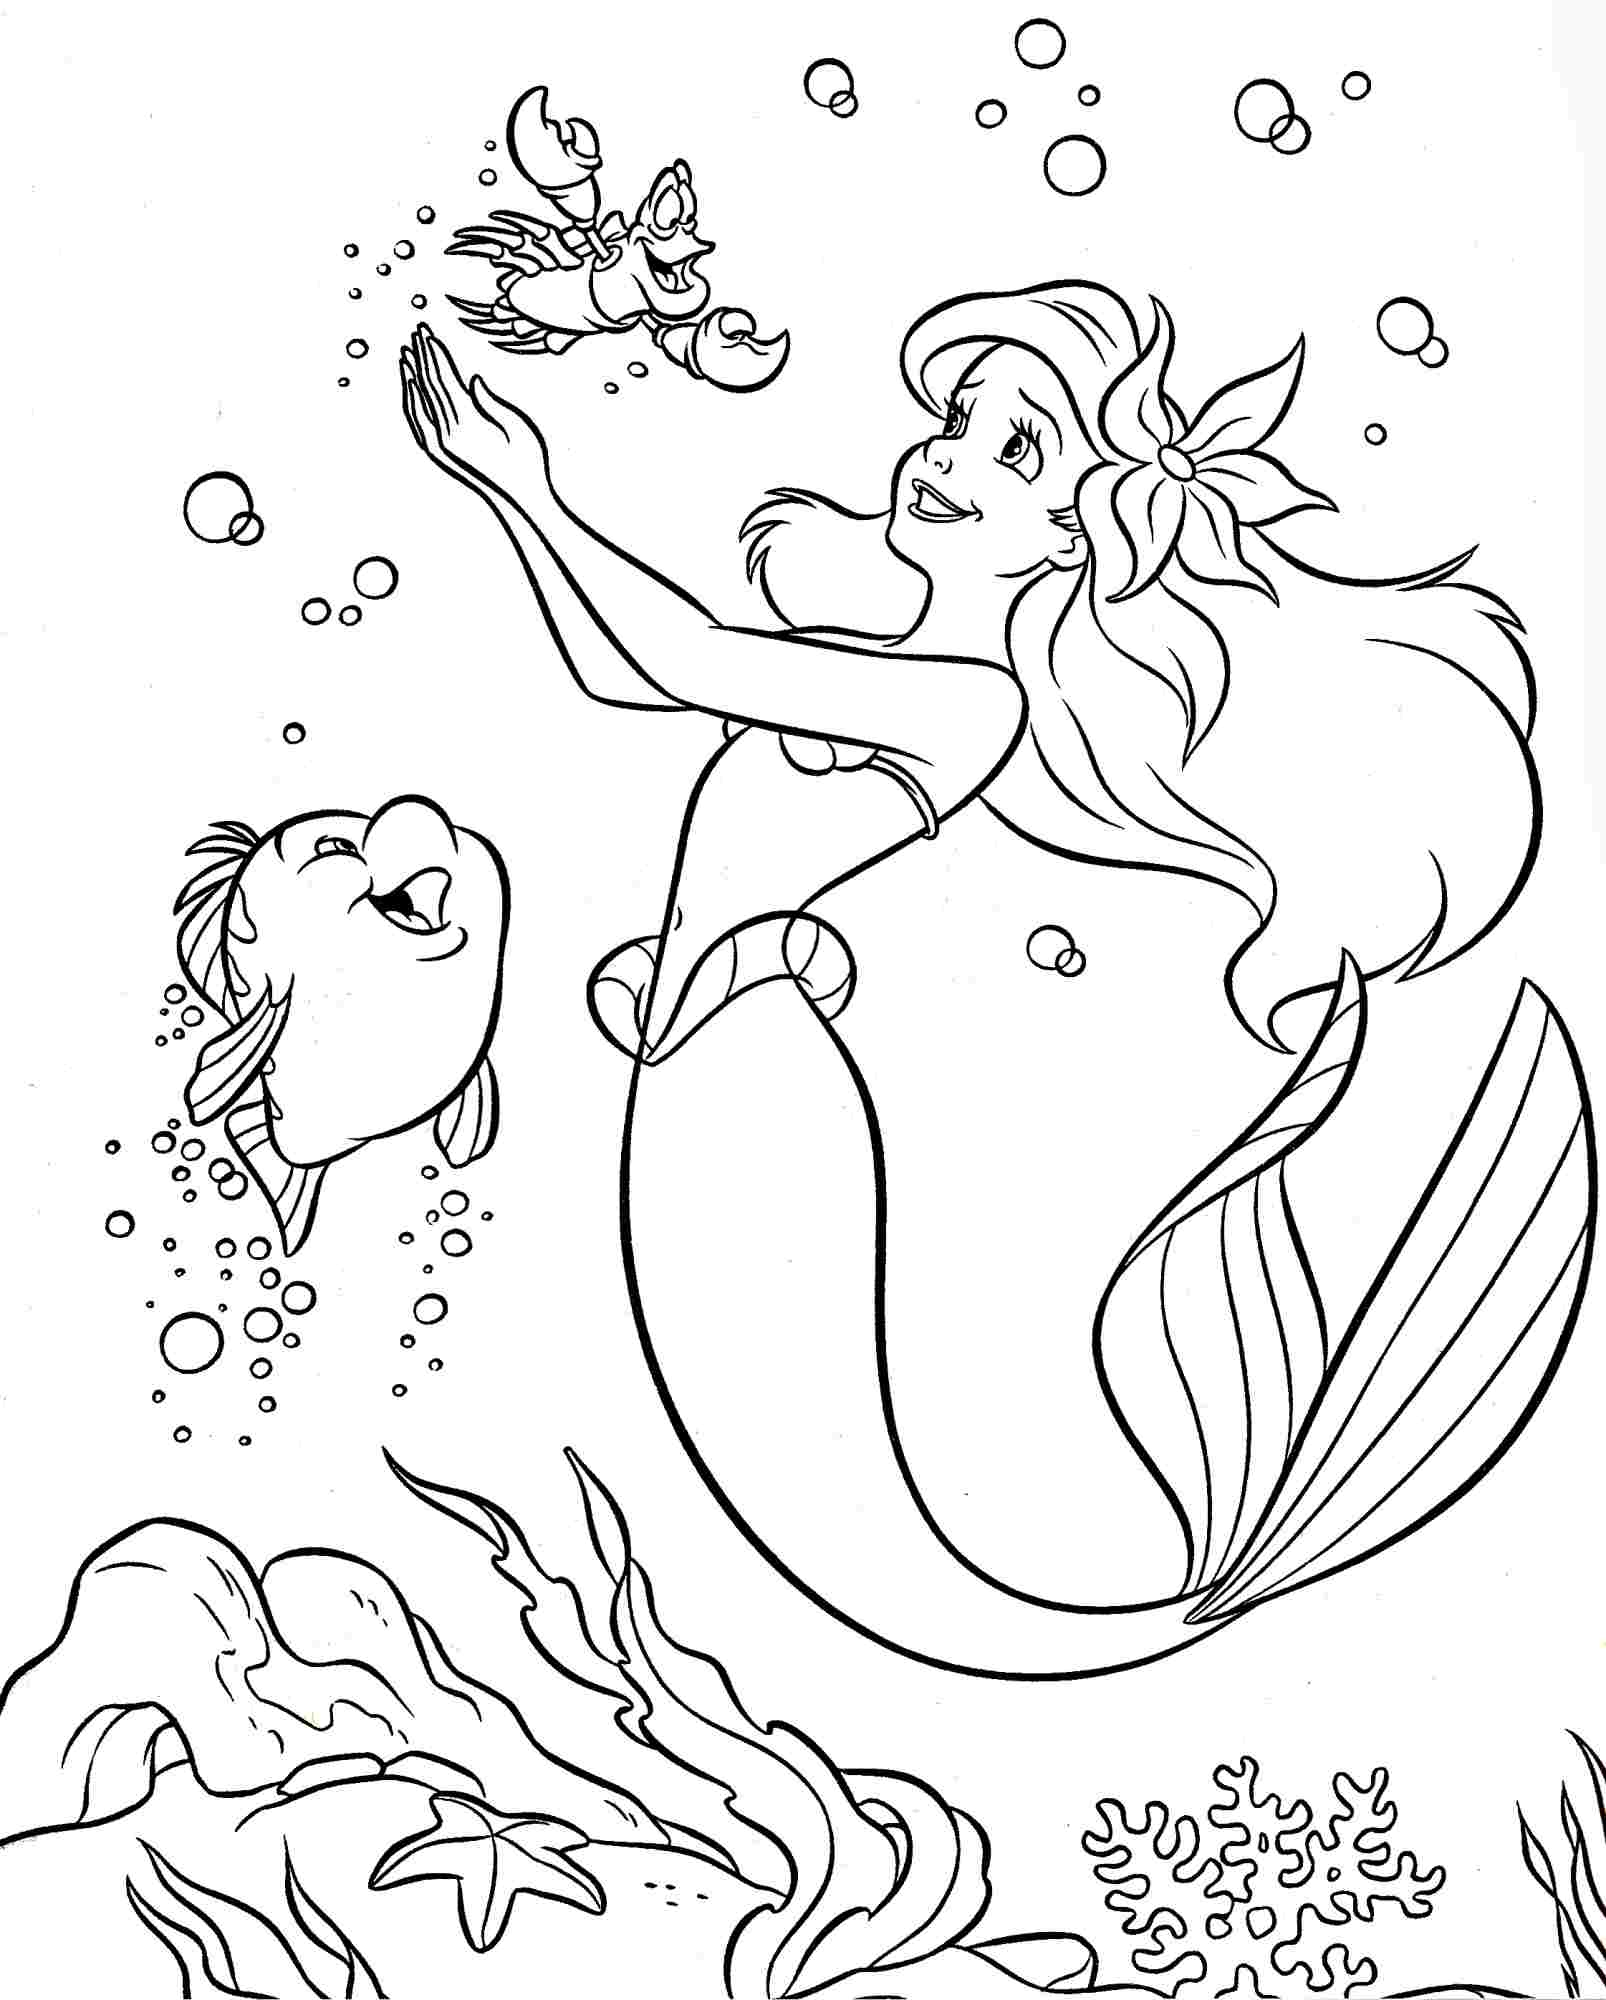 ariel disney coloring 8 best images of printable disney princess toddler ariel disney coloring